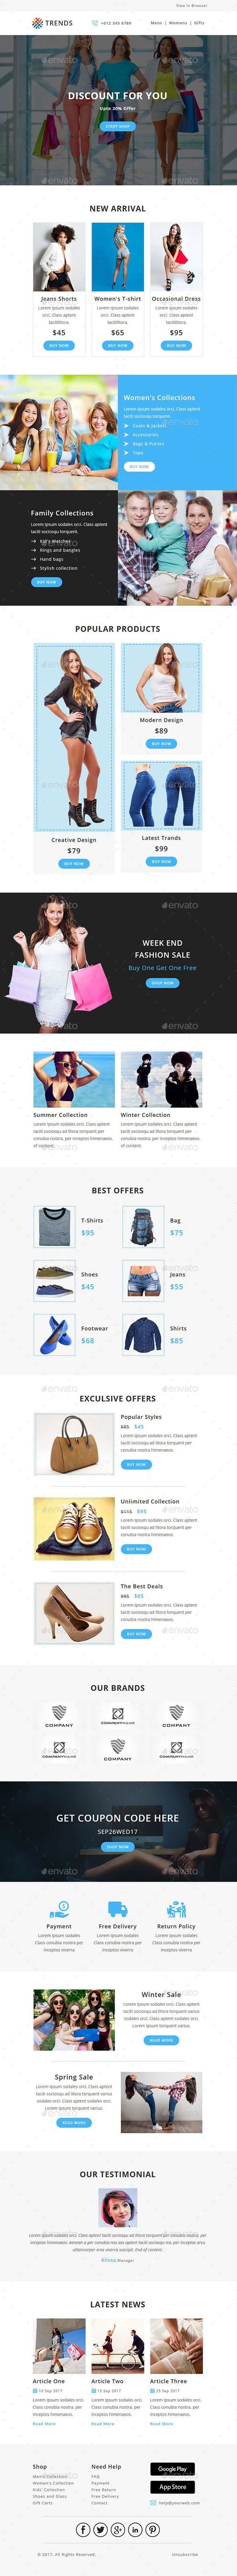 GraphicRiver Trends EMAIL PSD Template 20939927